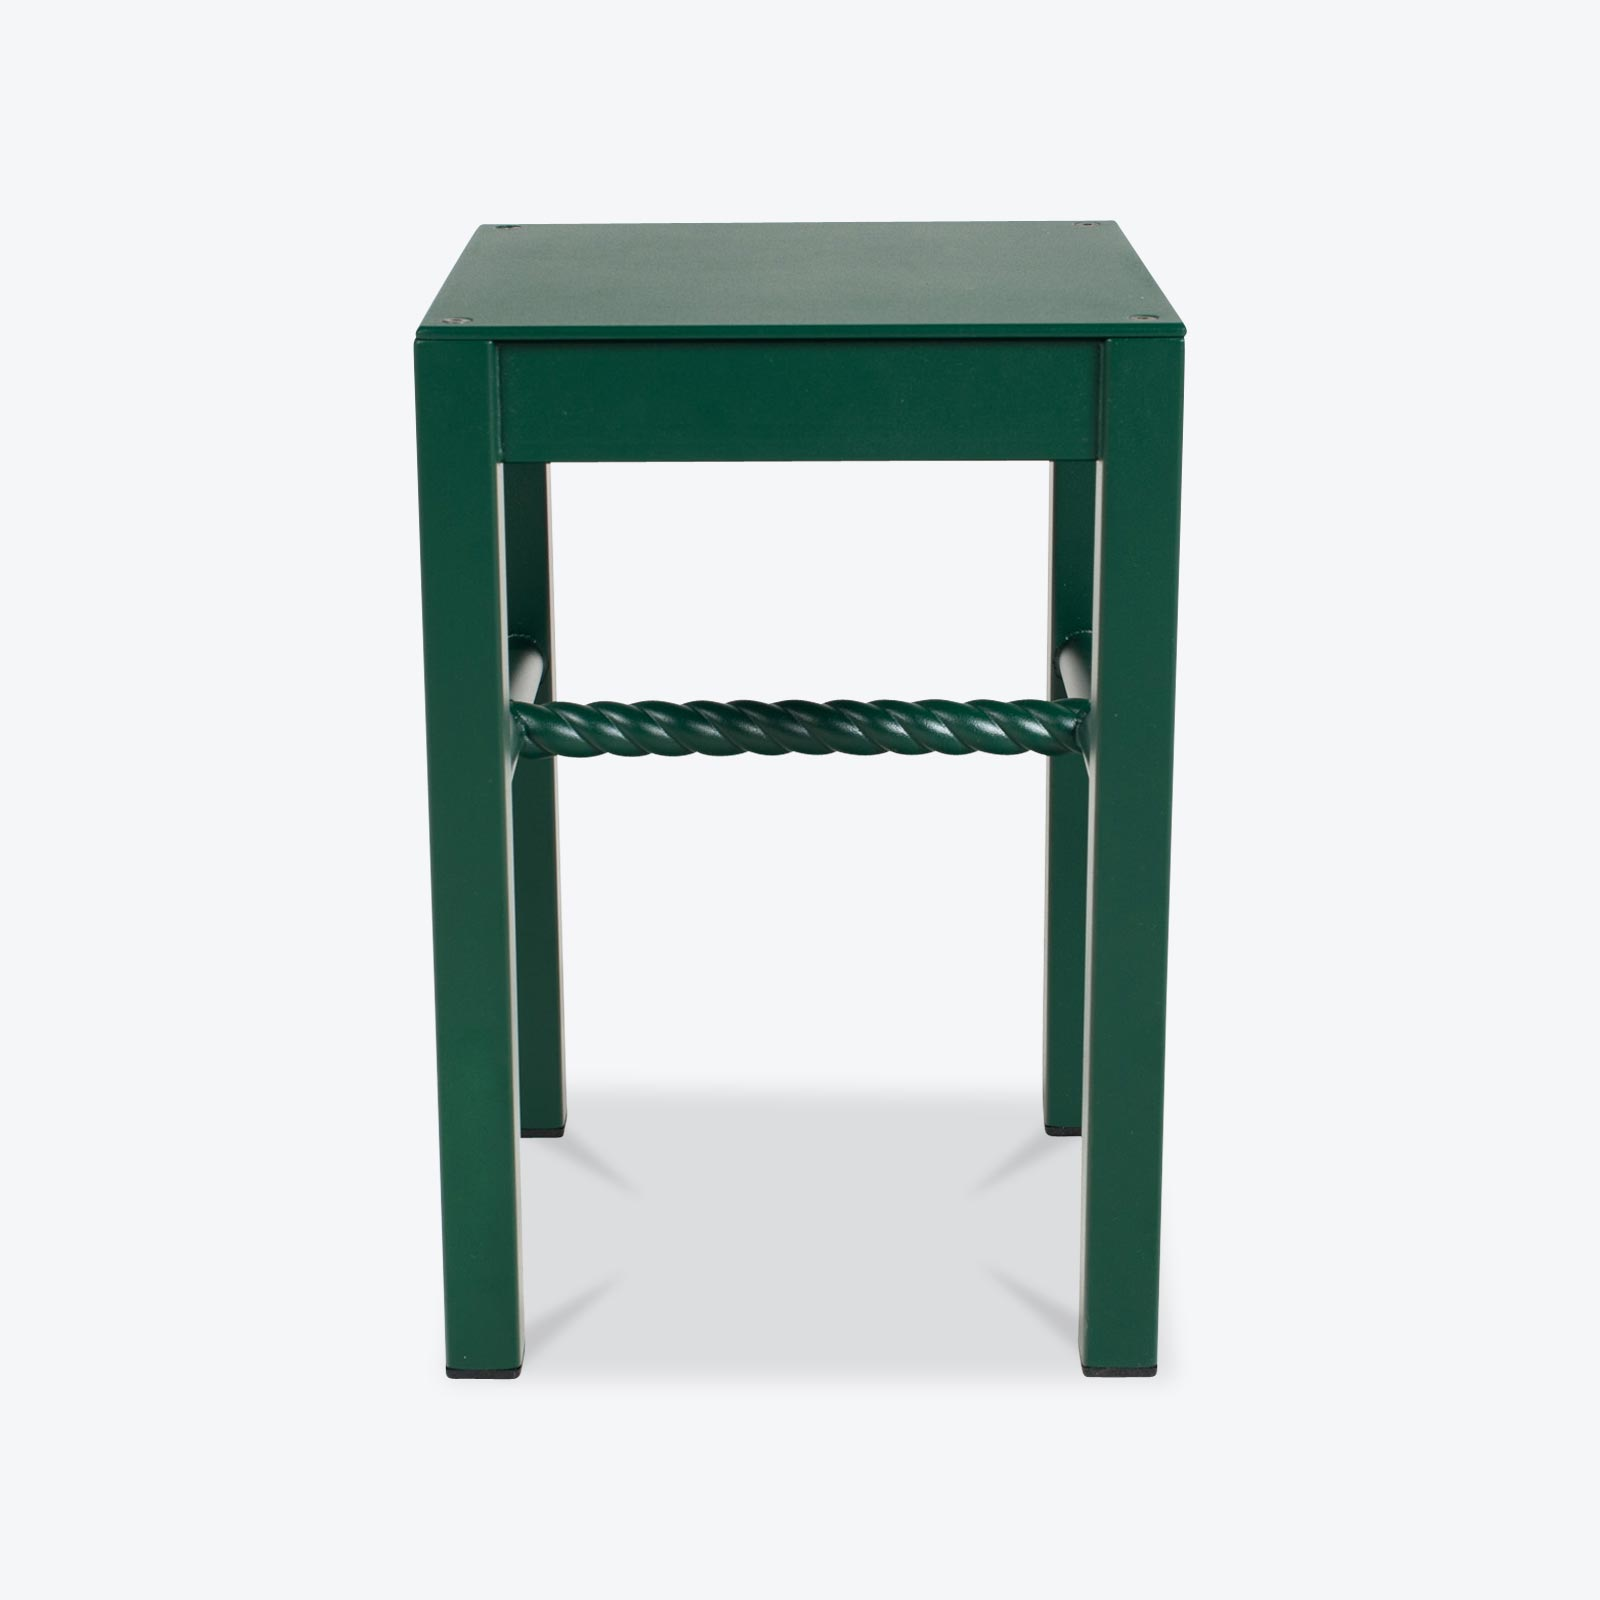 Chubby Stool In Heritage Green Powder Coated Steel And Aluminium By Steelotto.jpg